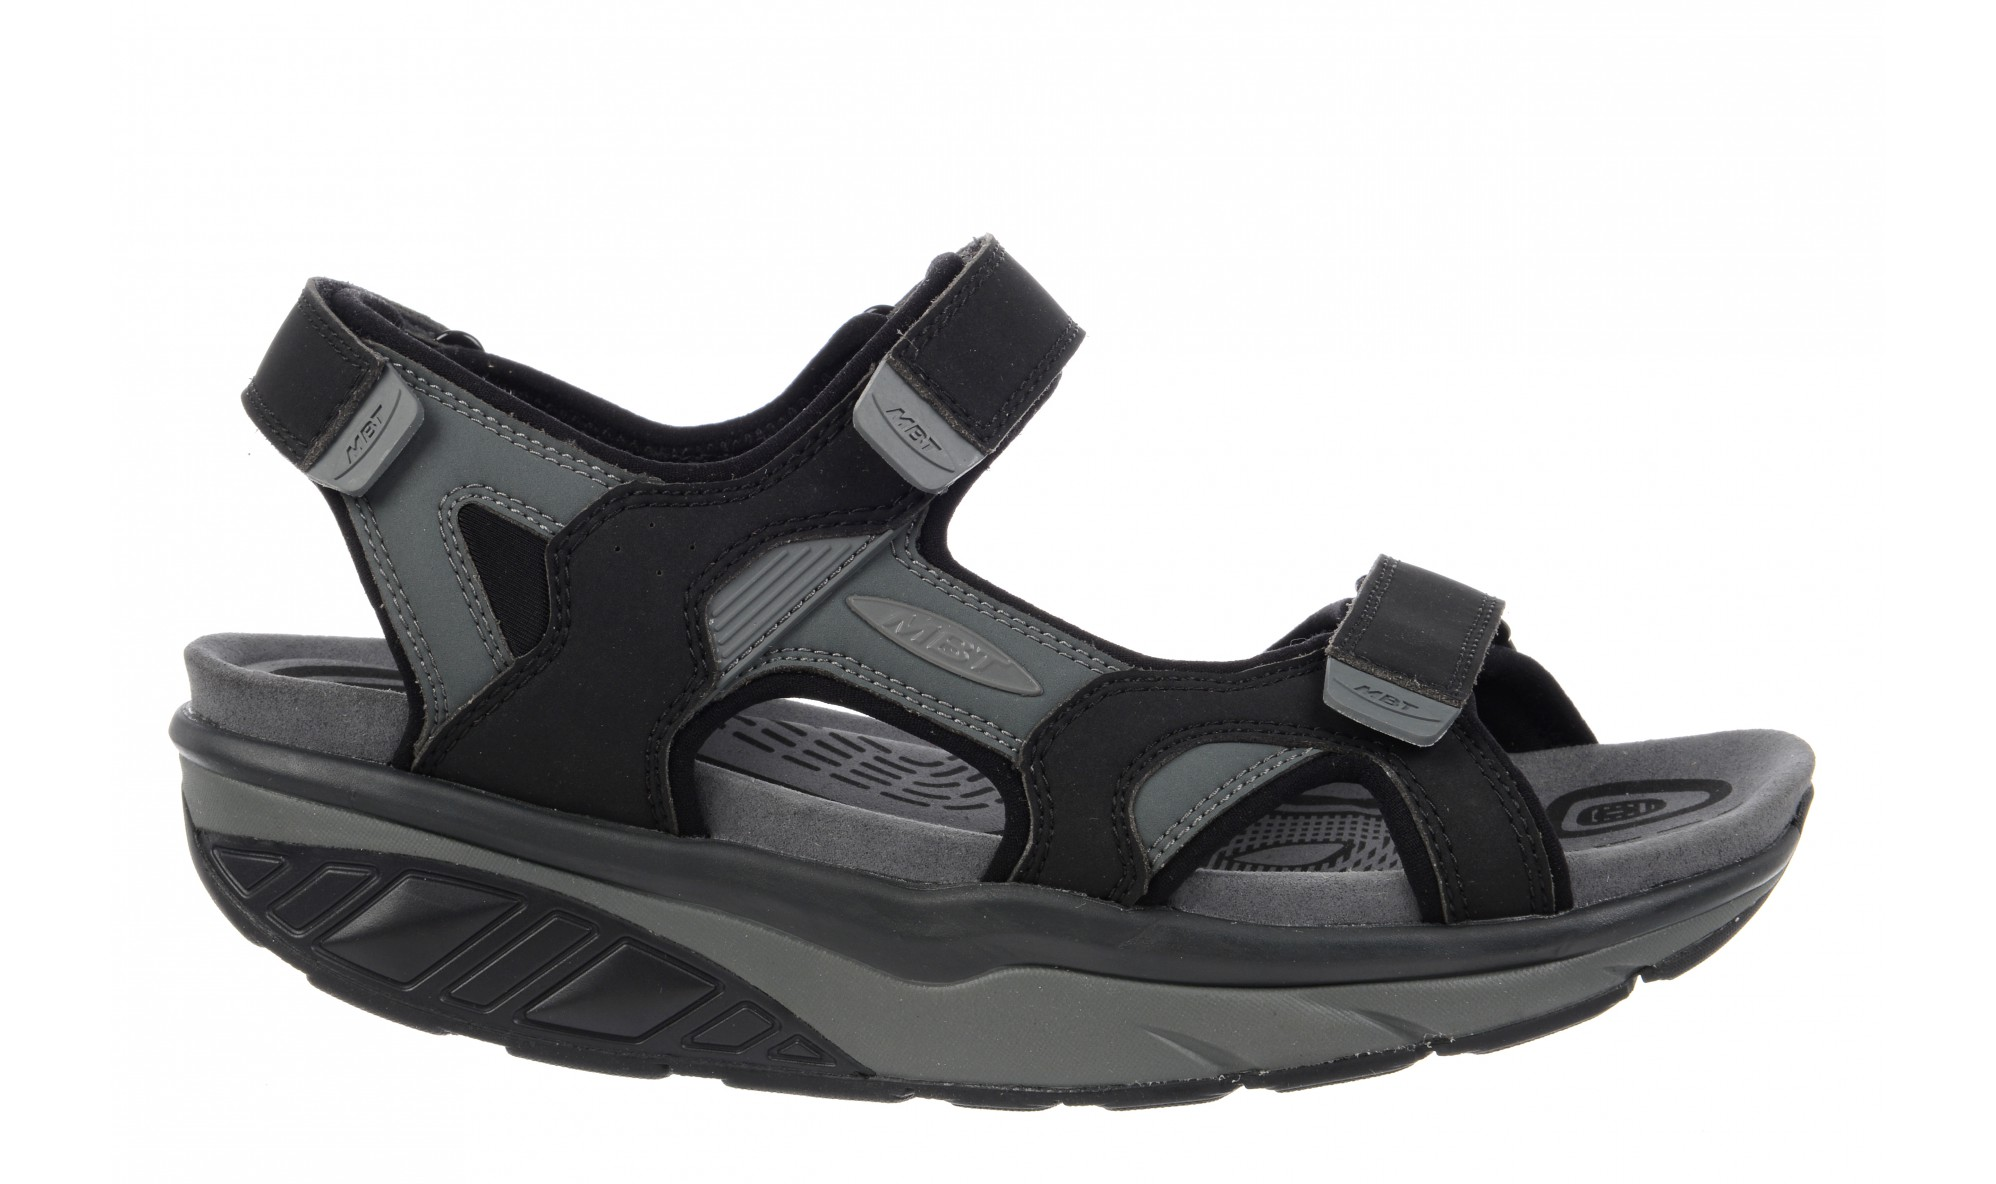 MBT Men's Saka 6S Sport Sandal Black / Charcoal Gray